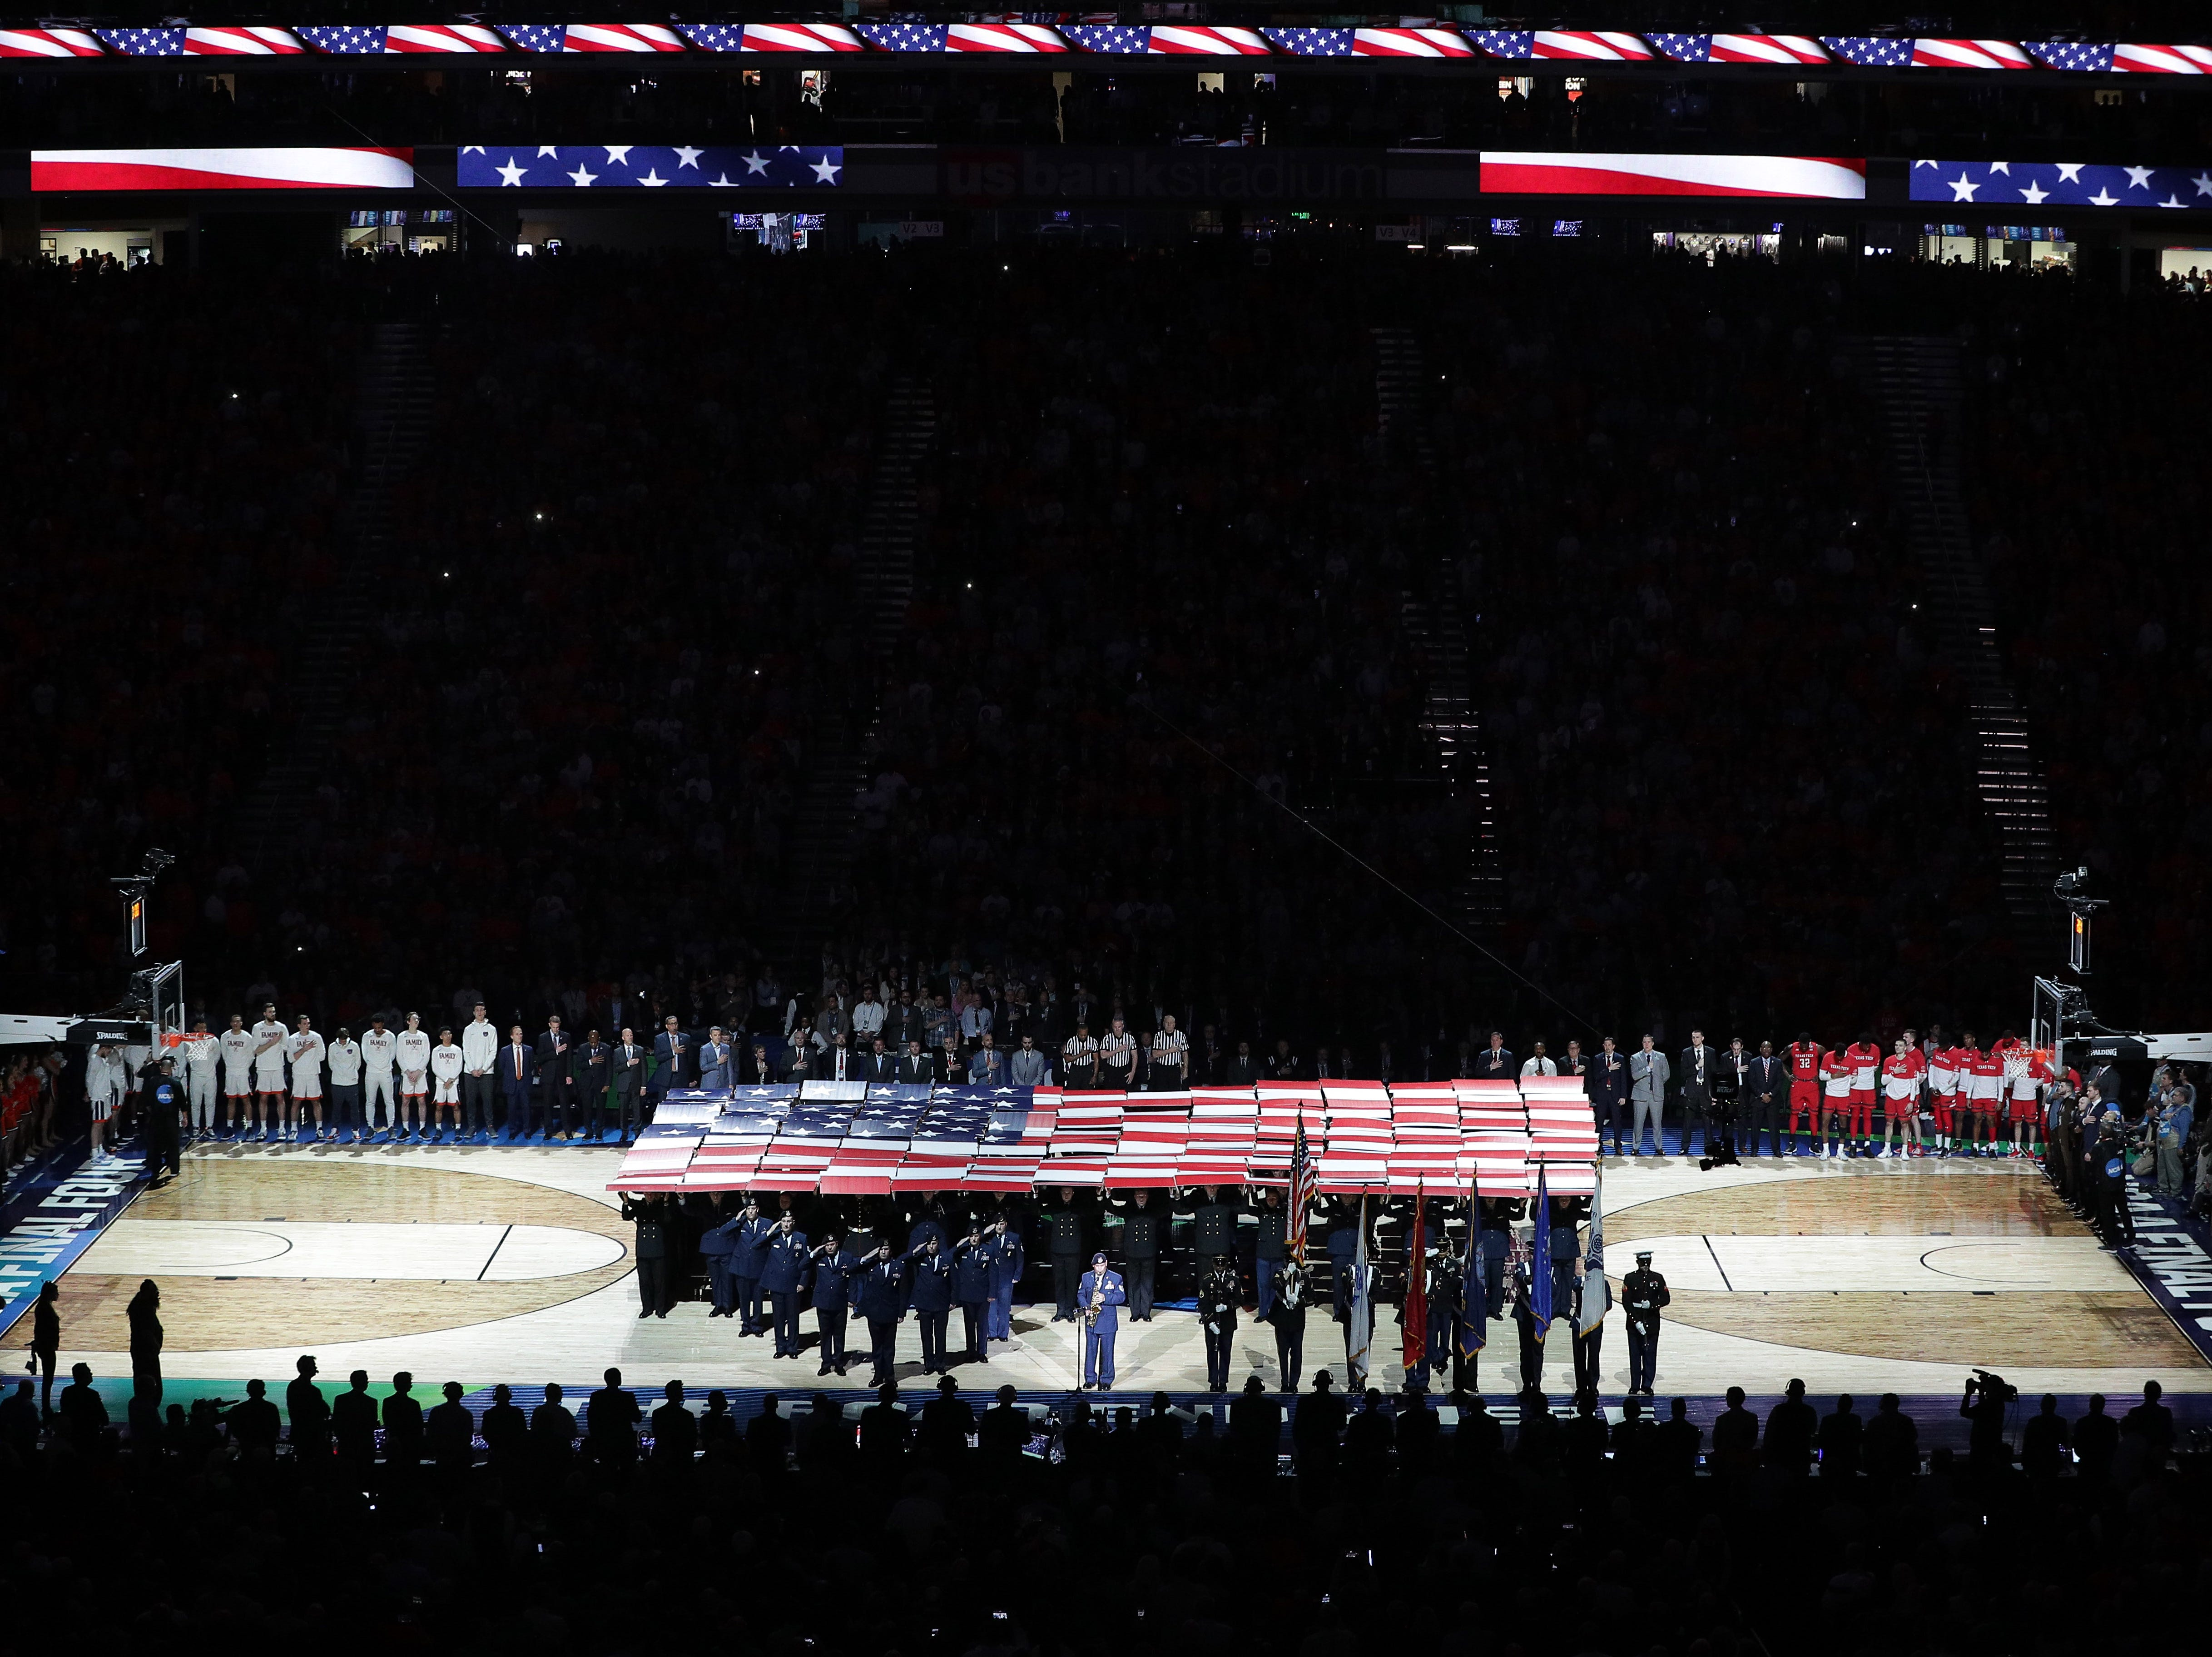 Apr 8, 2019; Minneapolis, MN, USA; A general view of US Bank Stadium during the national anthem in the championship game of the 2019 men's Final Four between the Virginia Cavaliers and the Texas Tech Red Raiders. Mandatory Credit: Brace Hemmelgarn-USA TODAY Sports